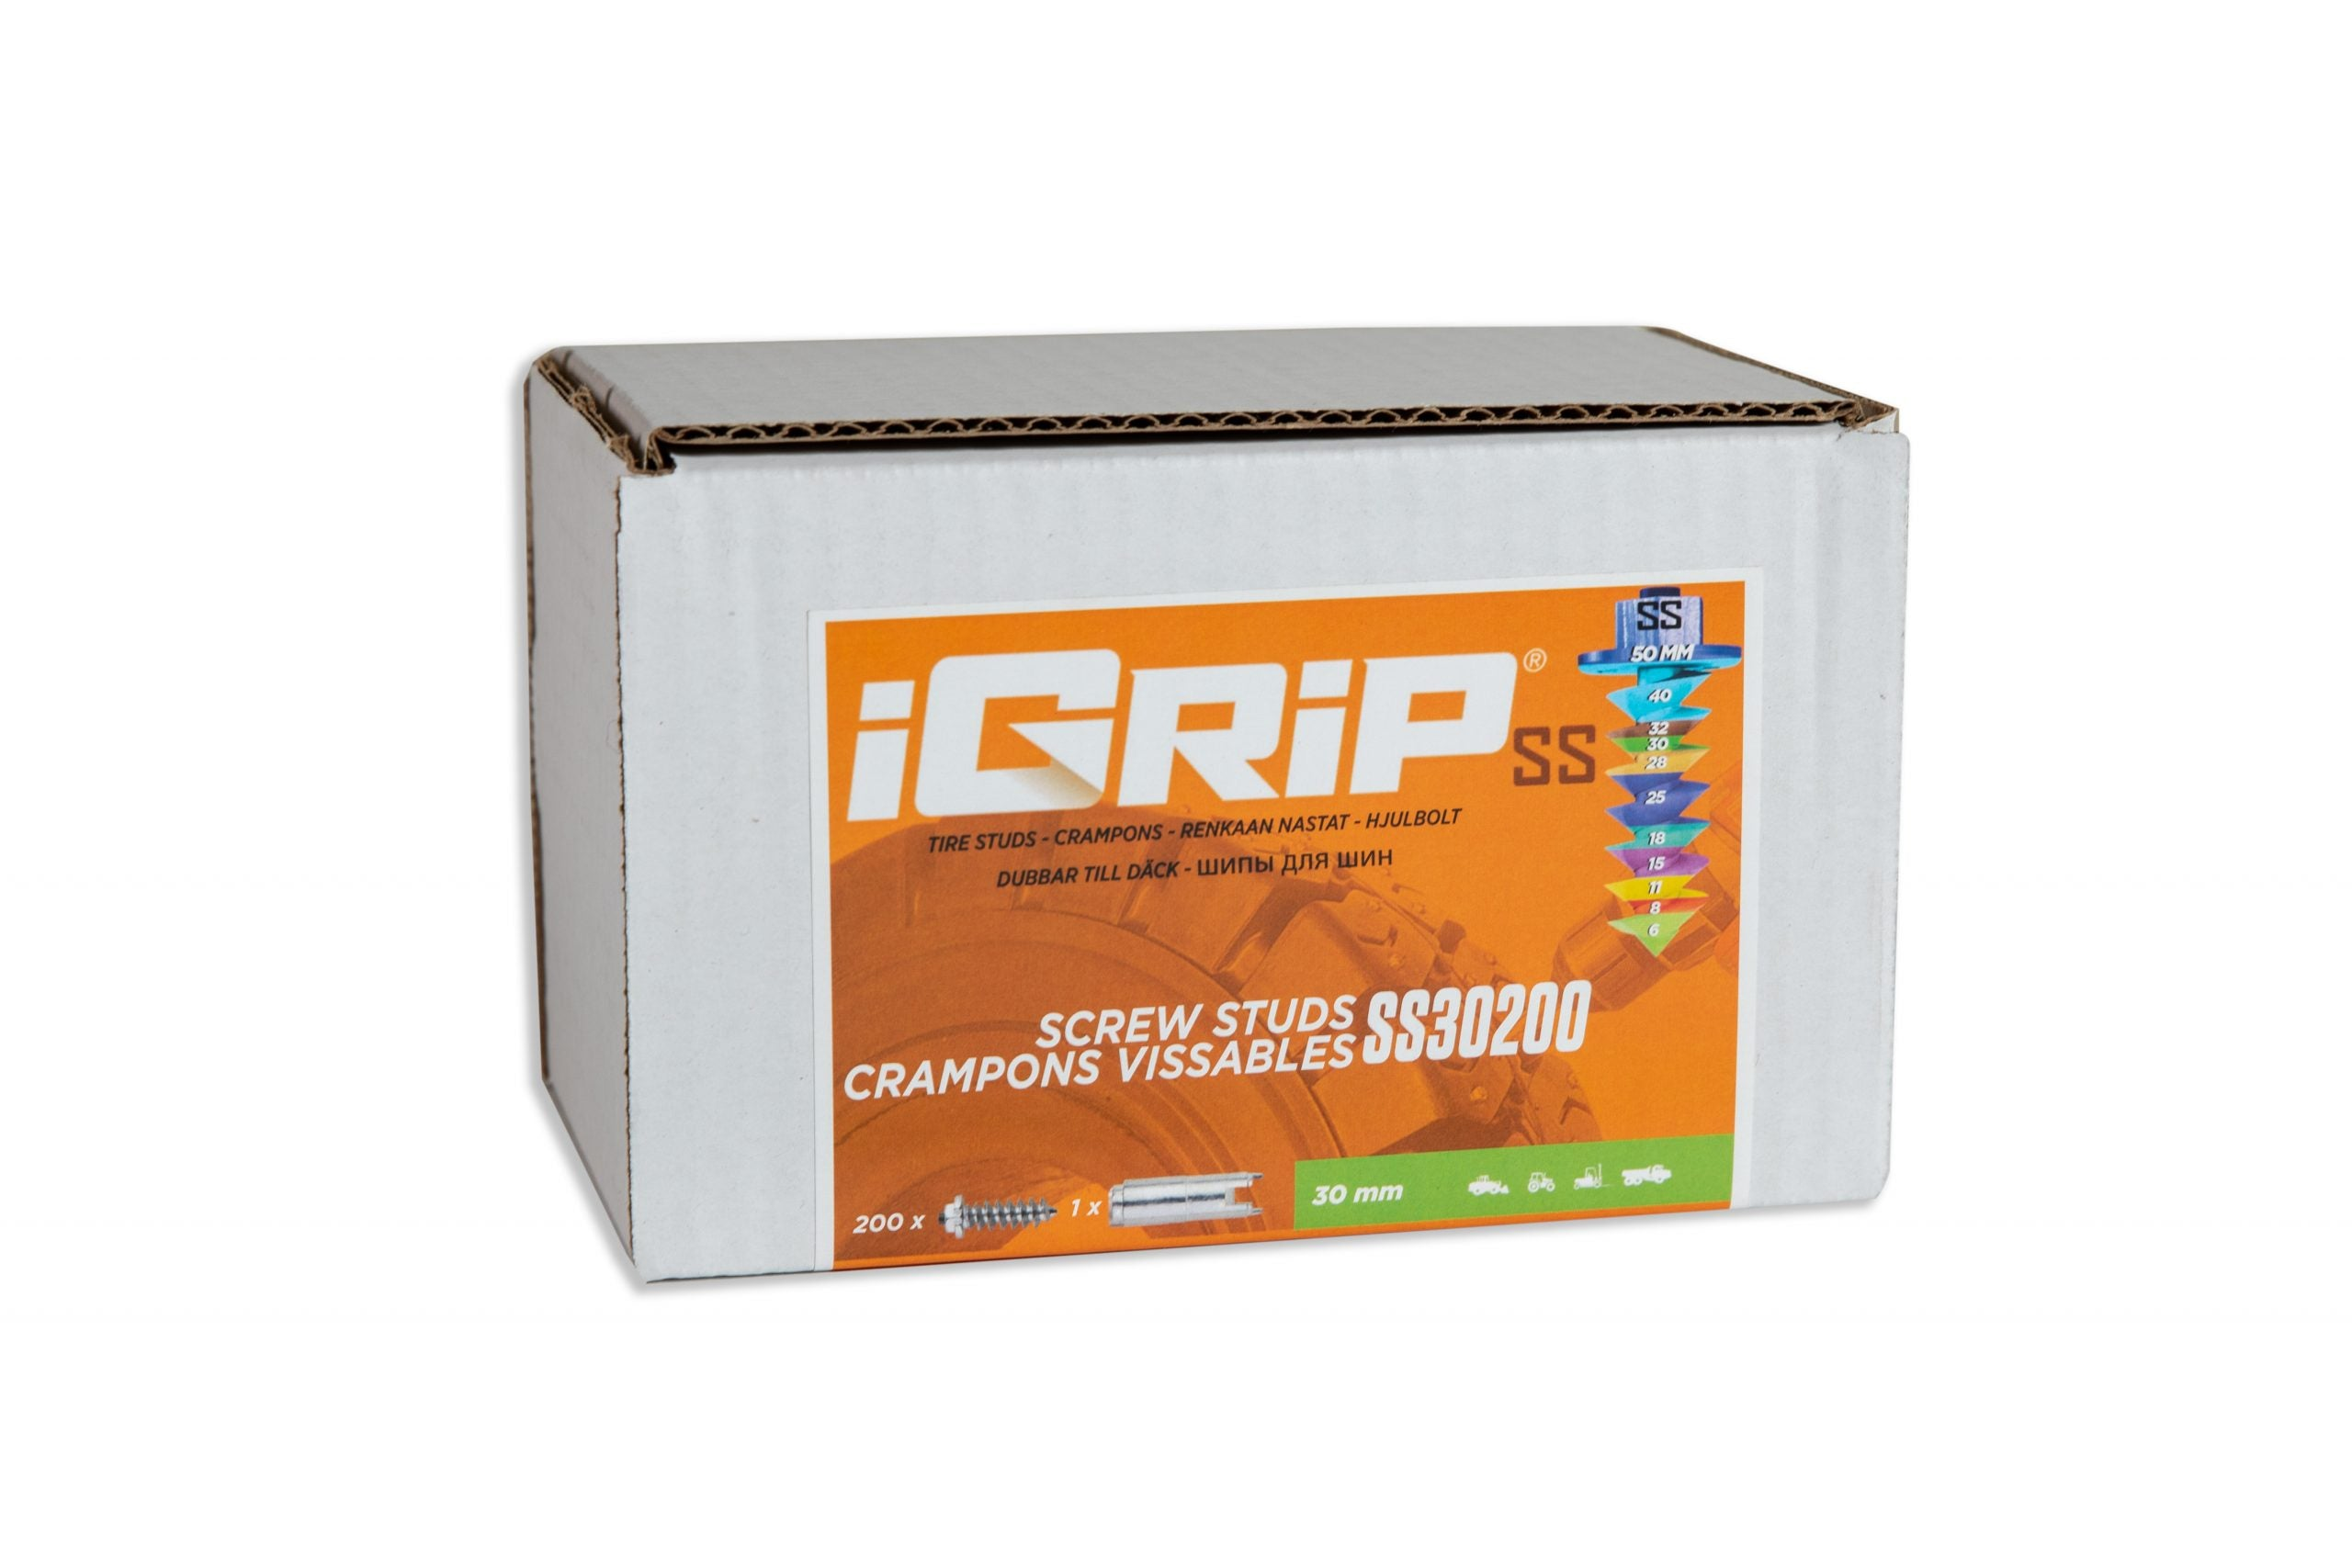 SS-30 Shouldered iGrip Tire Studs